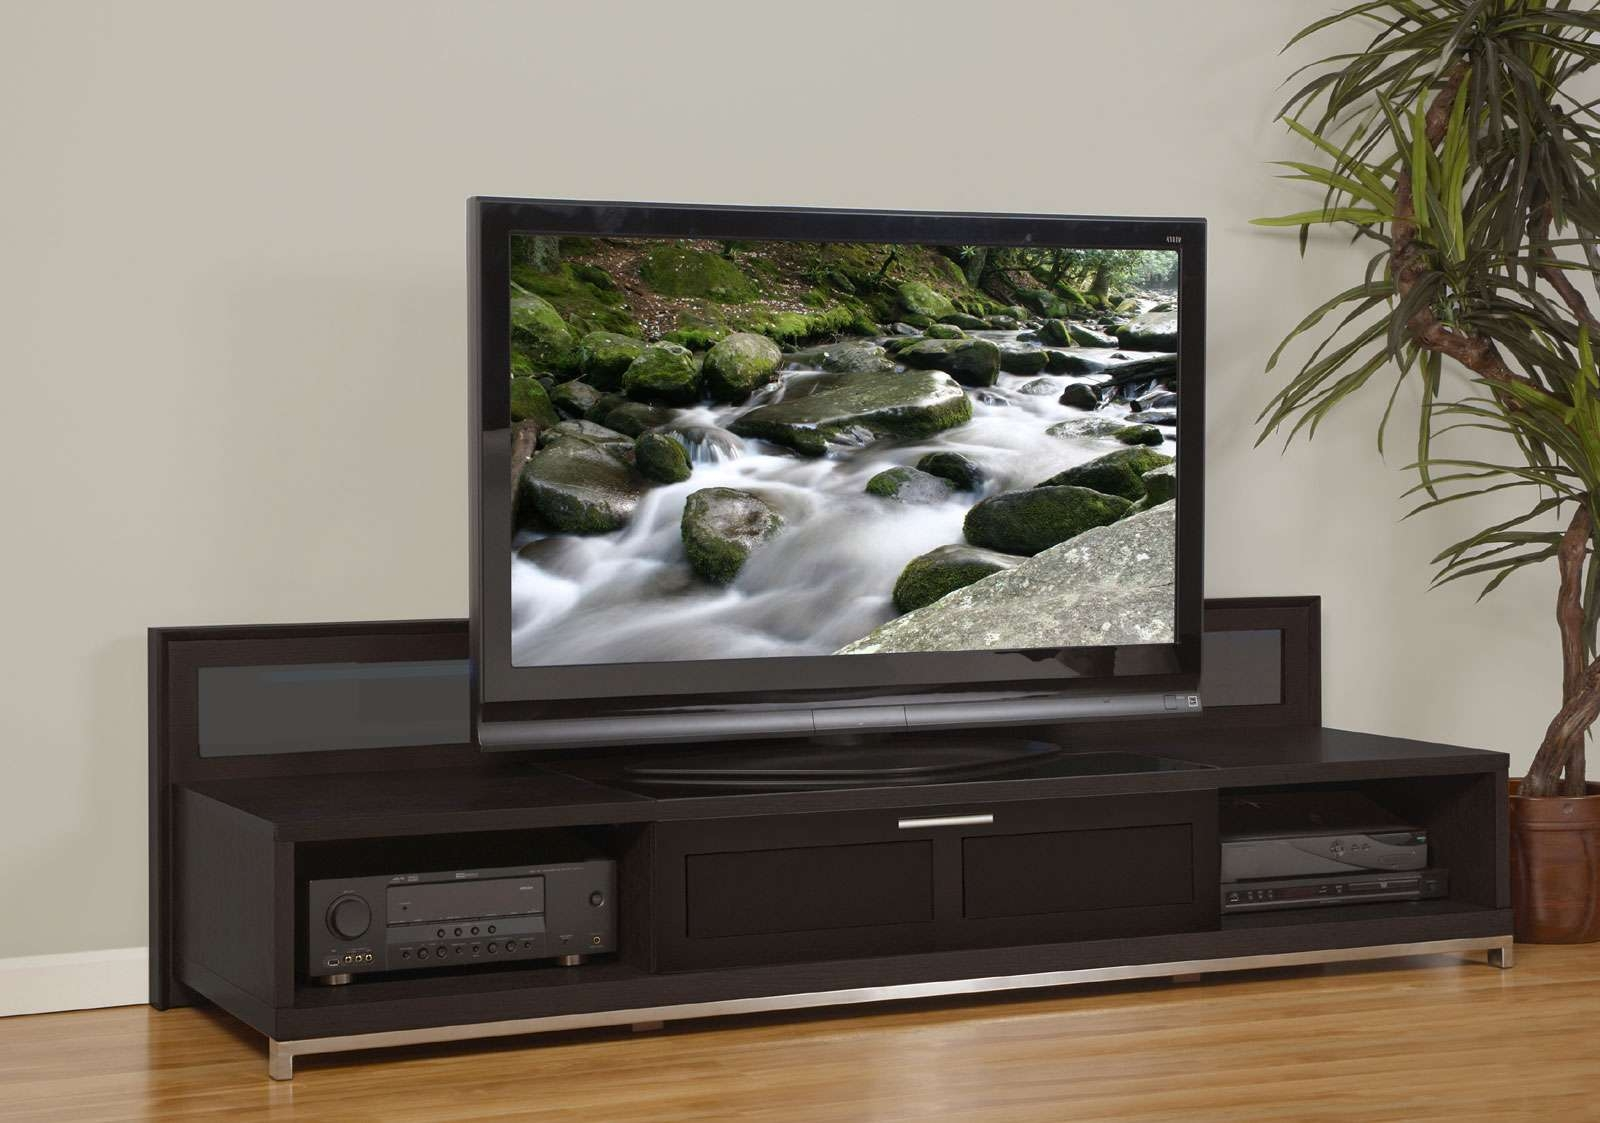 Tv Stands With Flat Panel Mounts Corner Cabinet For Screens Pertaining To Contemporary Tv Stands For Flat Screens (View 17 of 20)